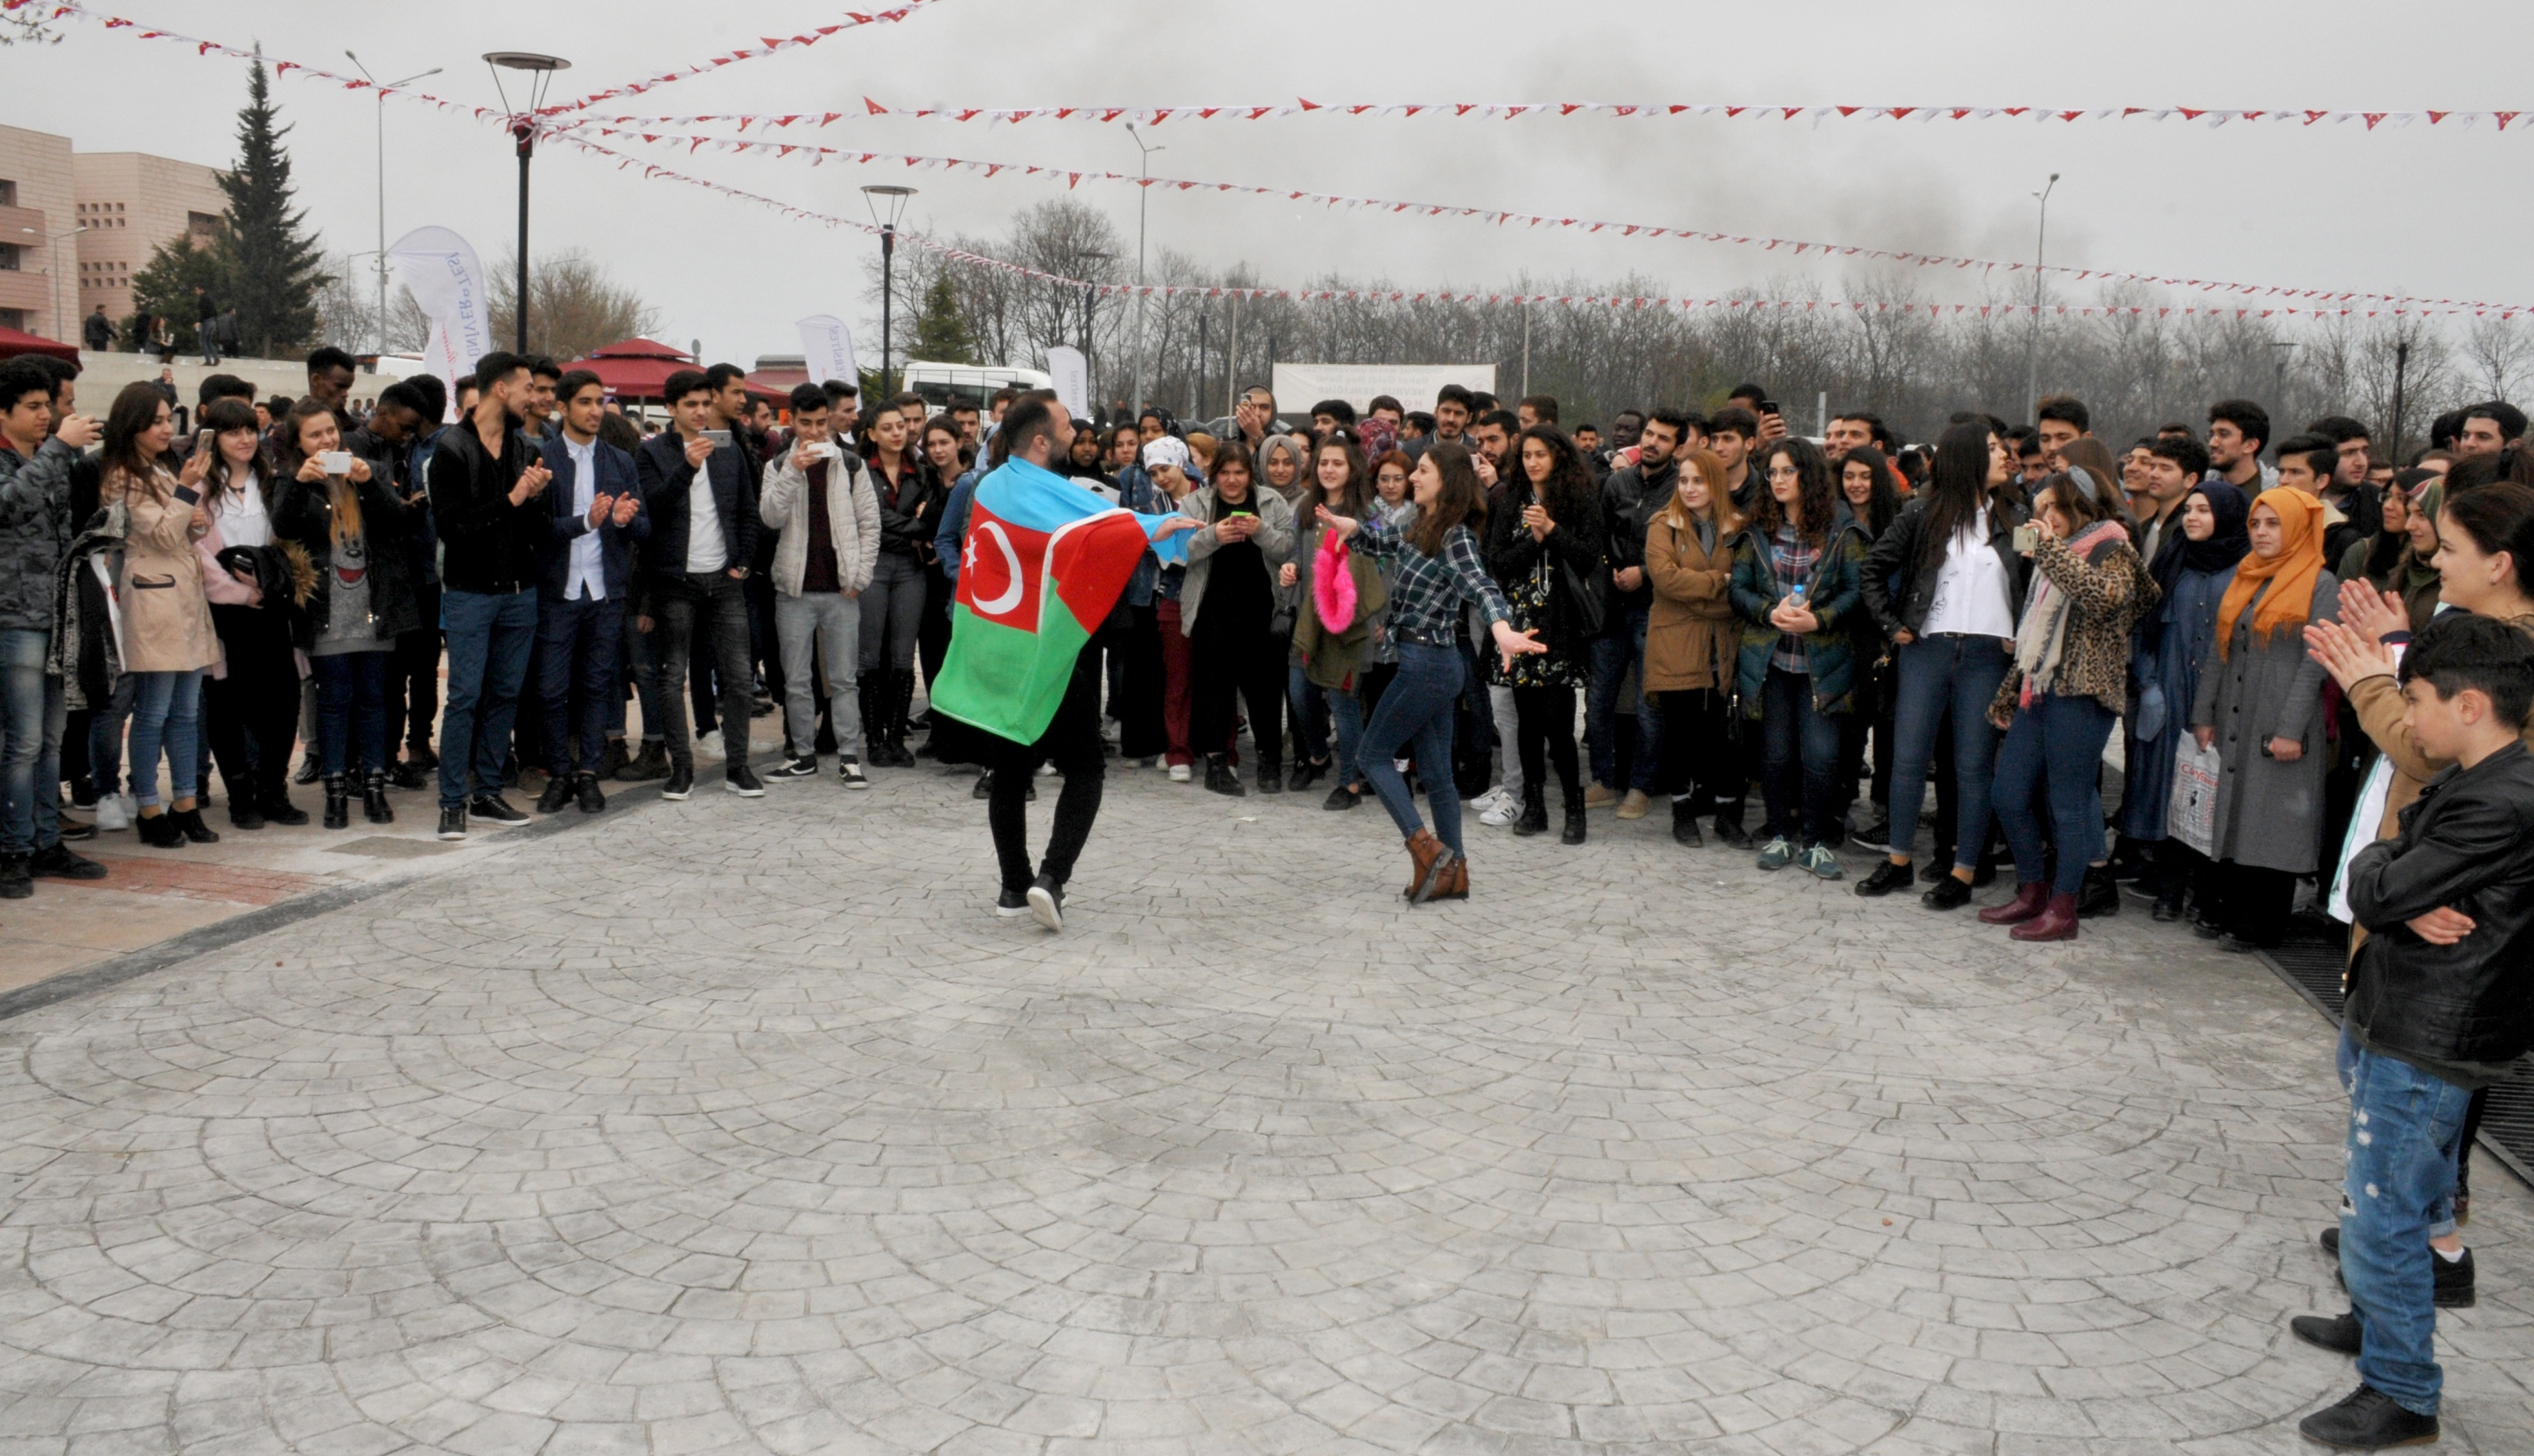 http://www.omu.edu.tr/sites/default/files/files/omu_family_enthusiastically_celebrated_newroz/dsc_0386.jpg